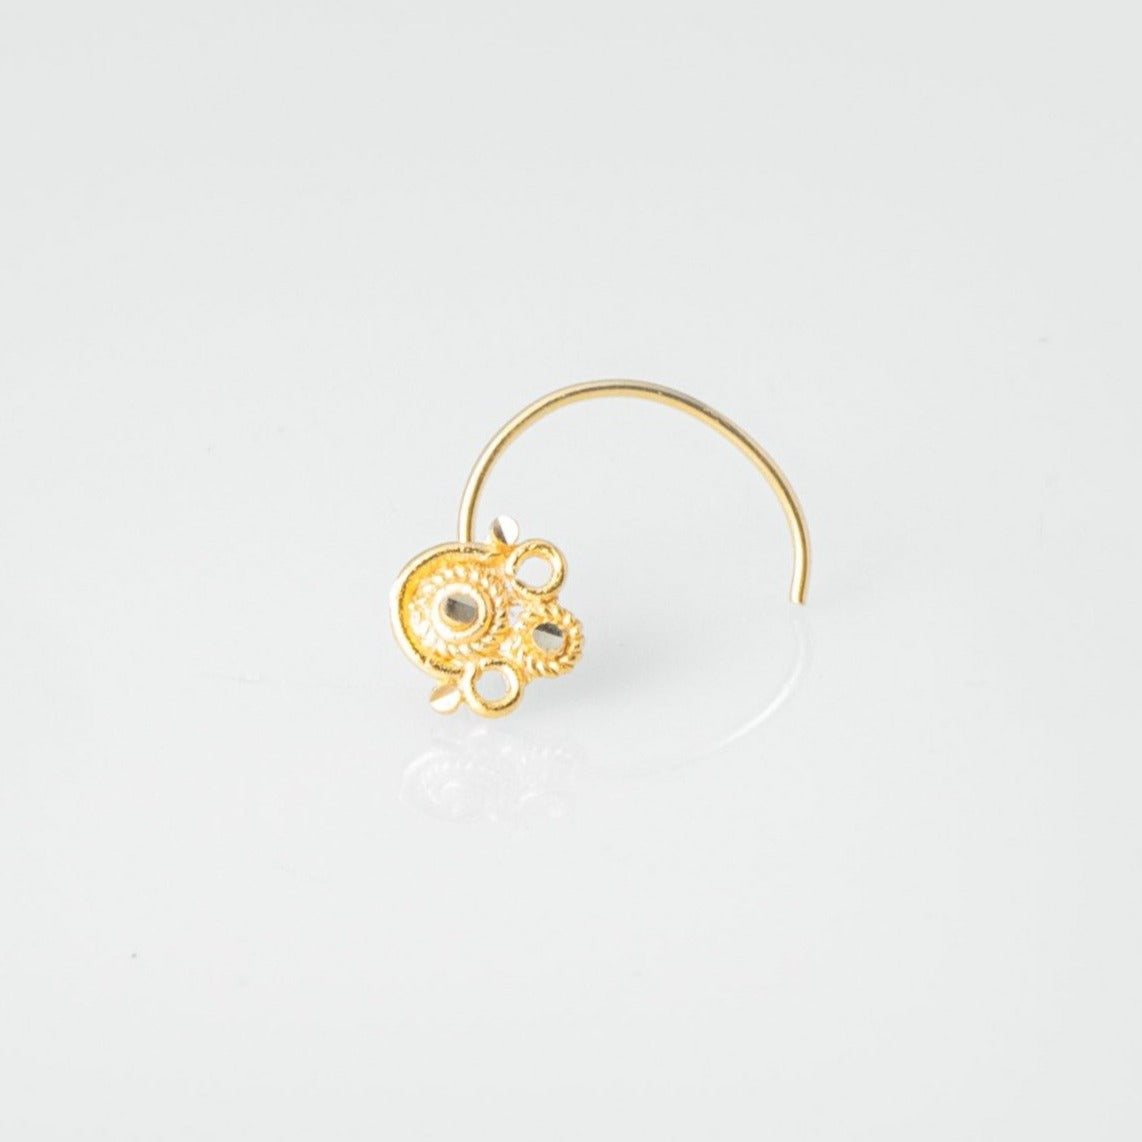 18ct Yellow Gold Wire Coil Back Nose Stud with Filigree Design NIP-5-130e